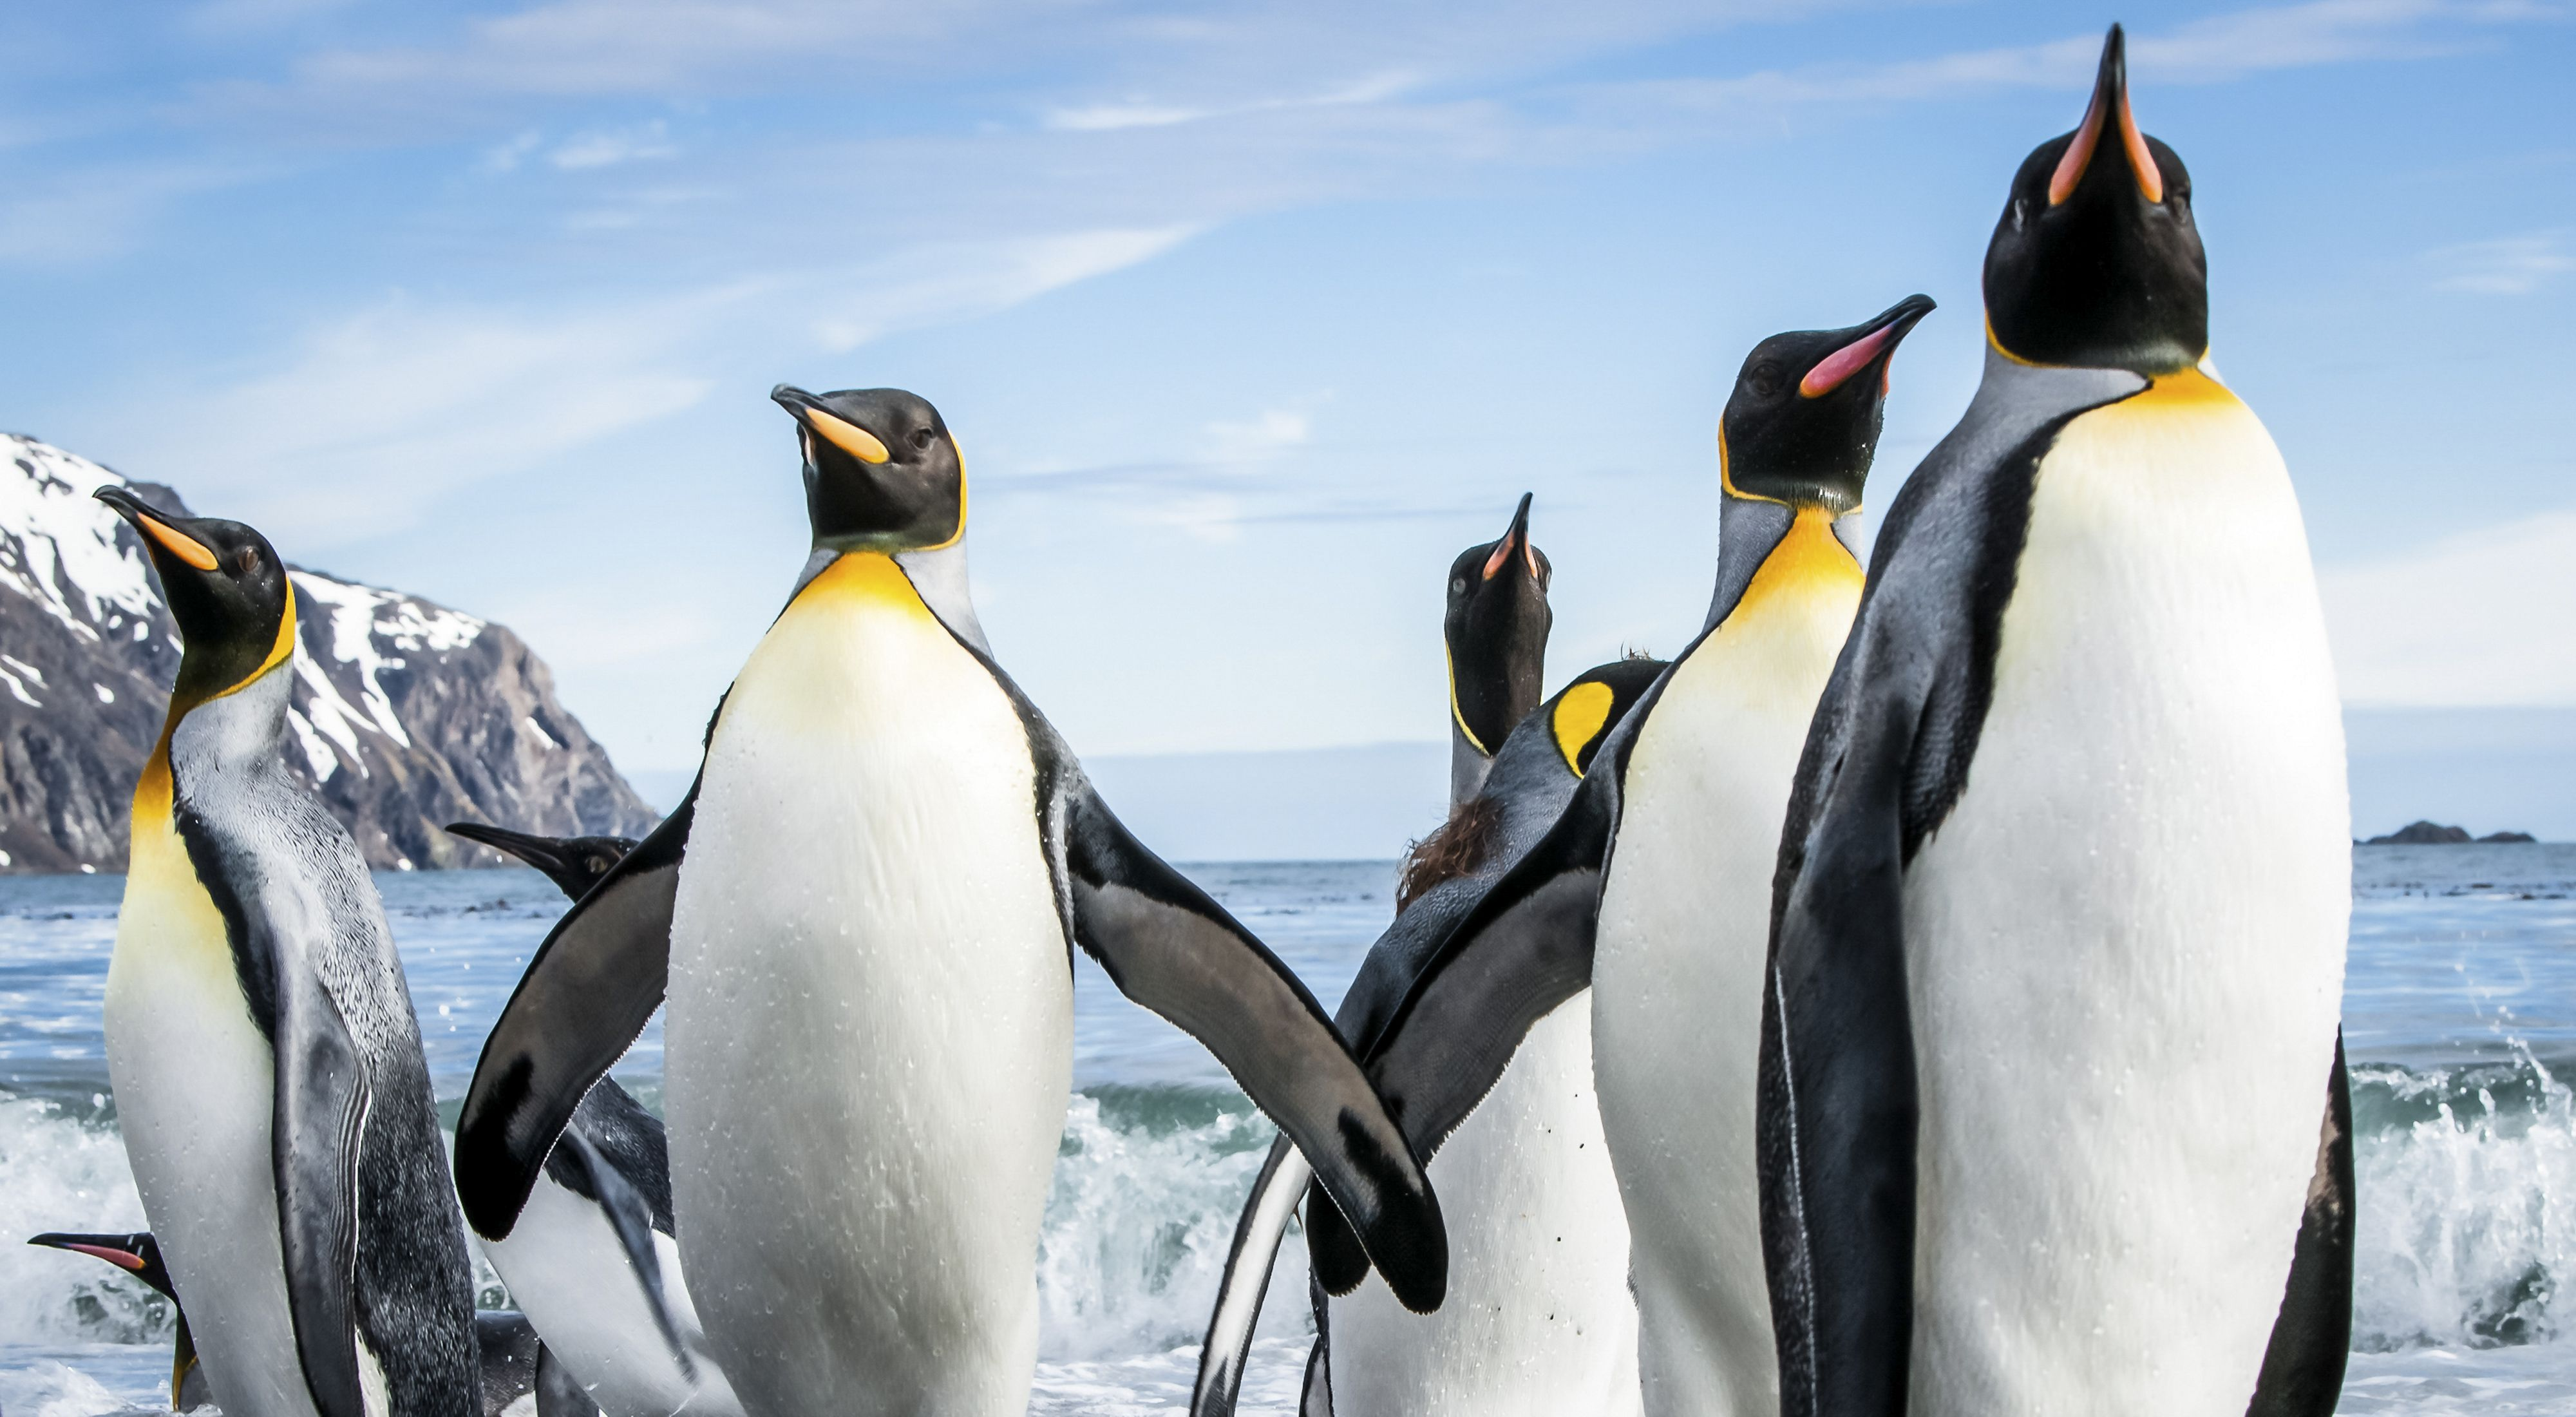 A group of king penguins emerge from the ocean